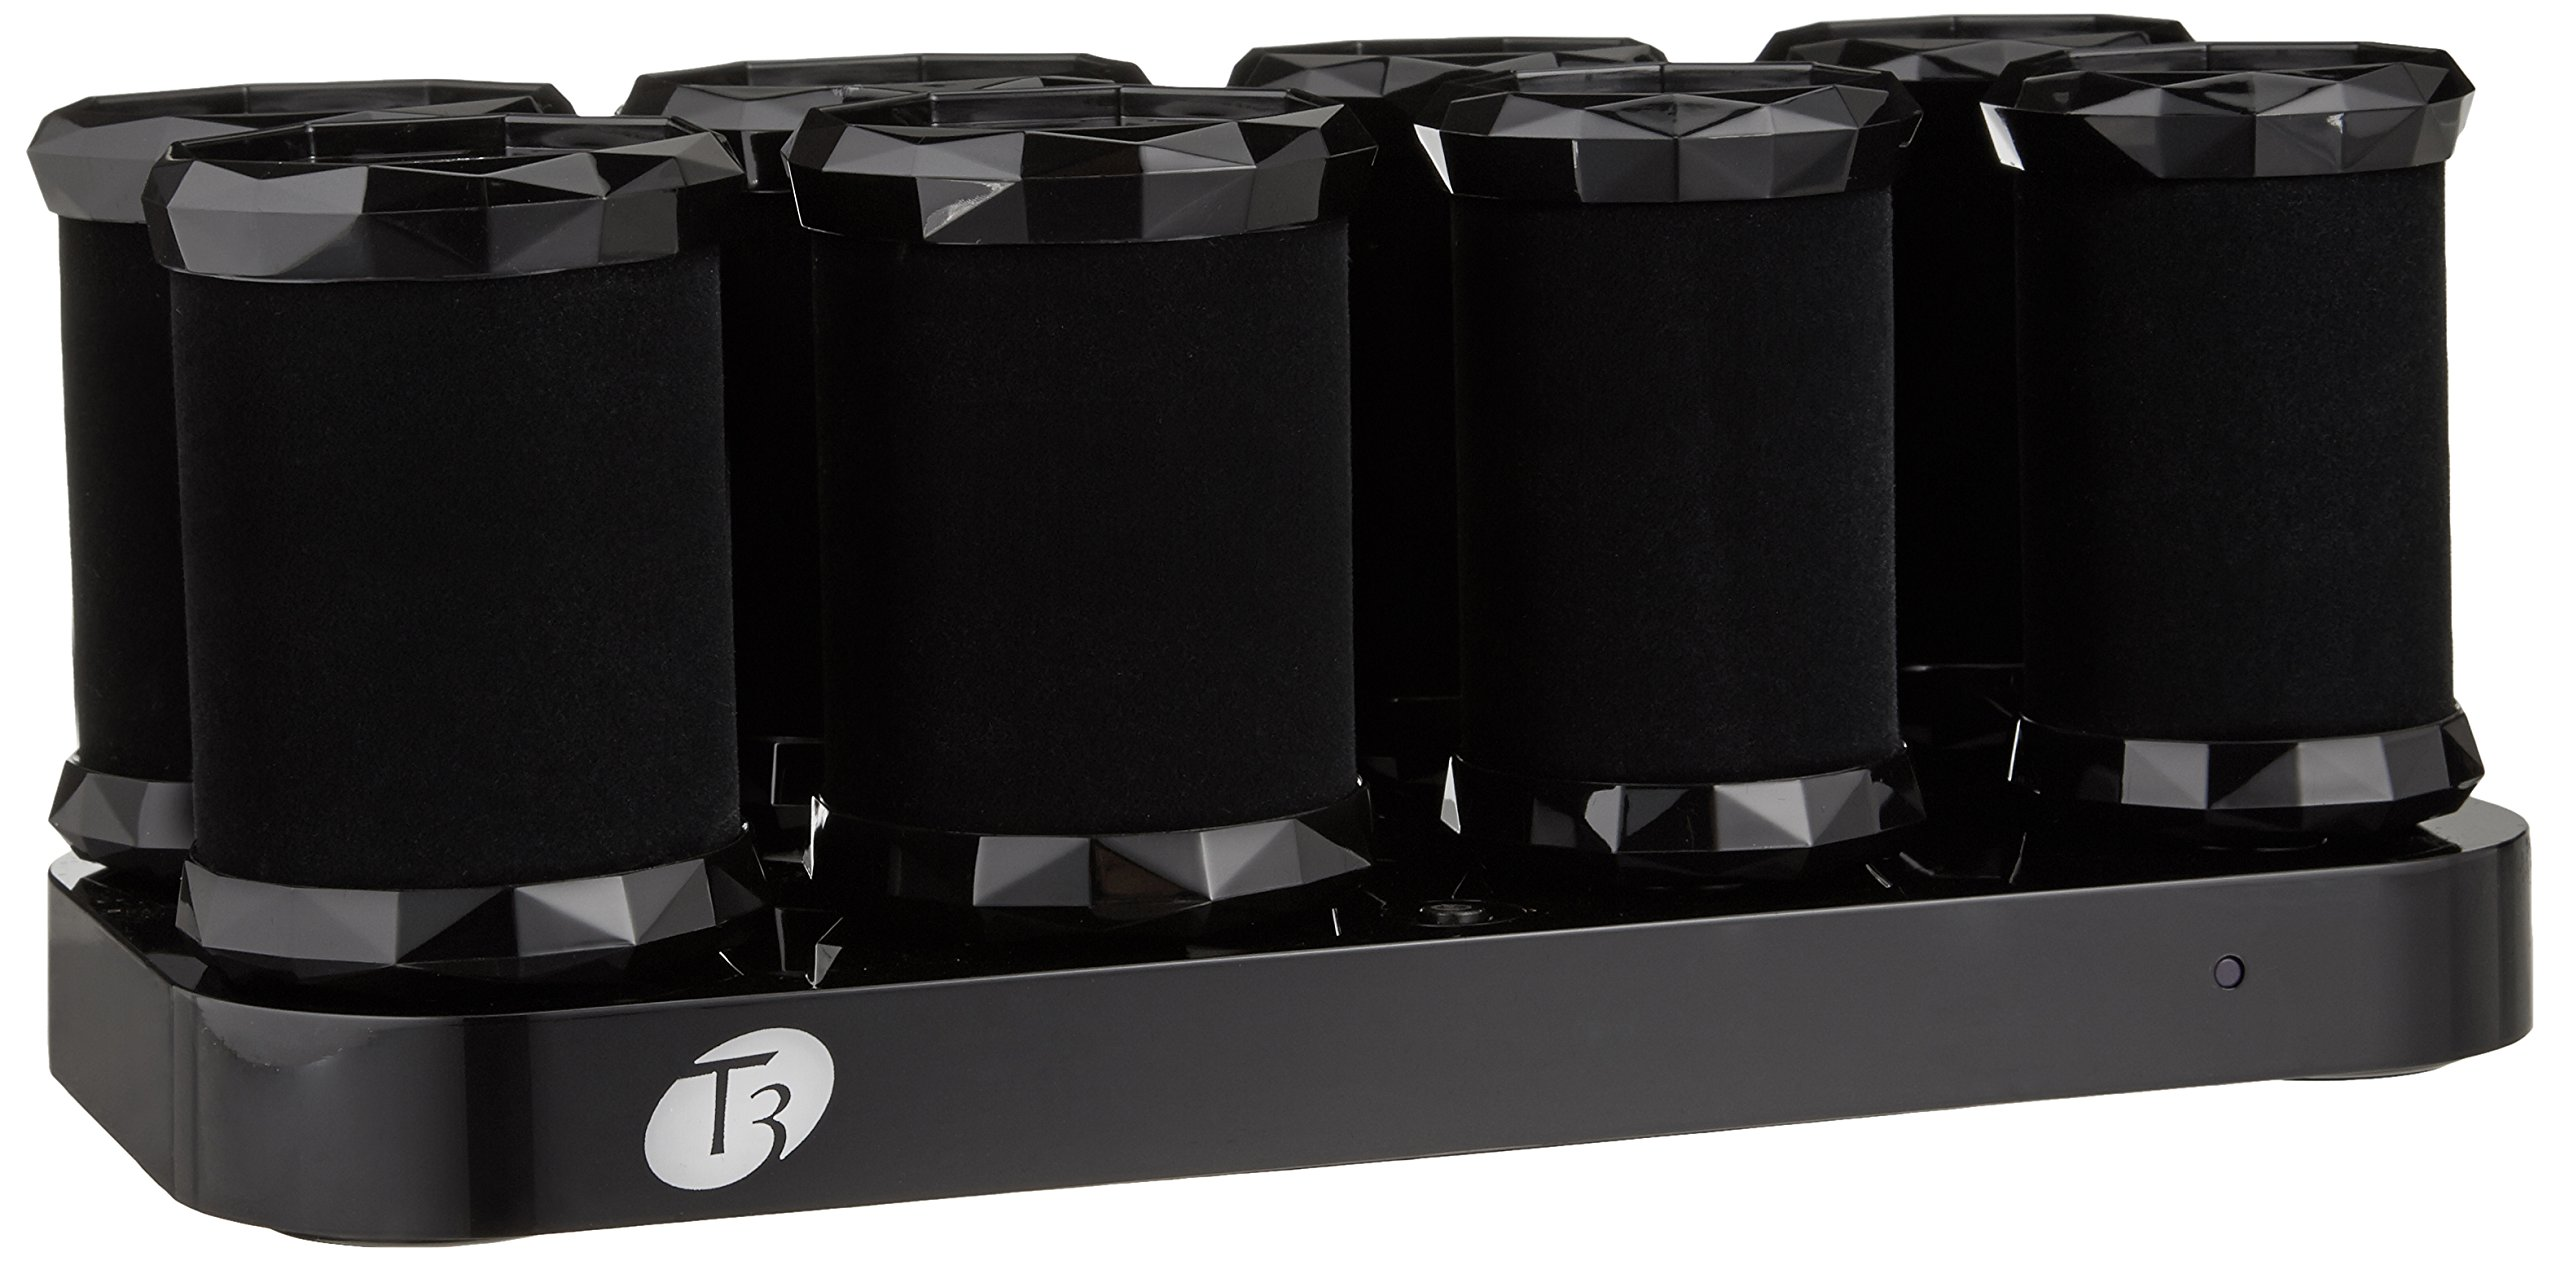 T3 Voluminous Hot Rollers - 81L2xsmB3DL - T3 Micro Voluminous Hot Rollers